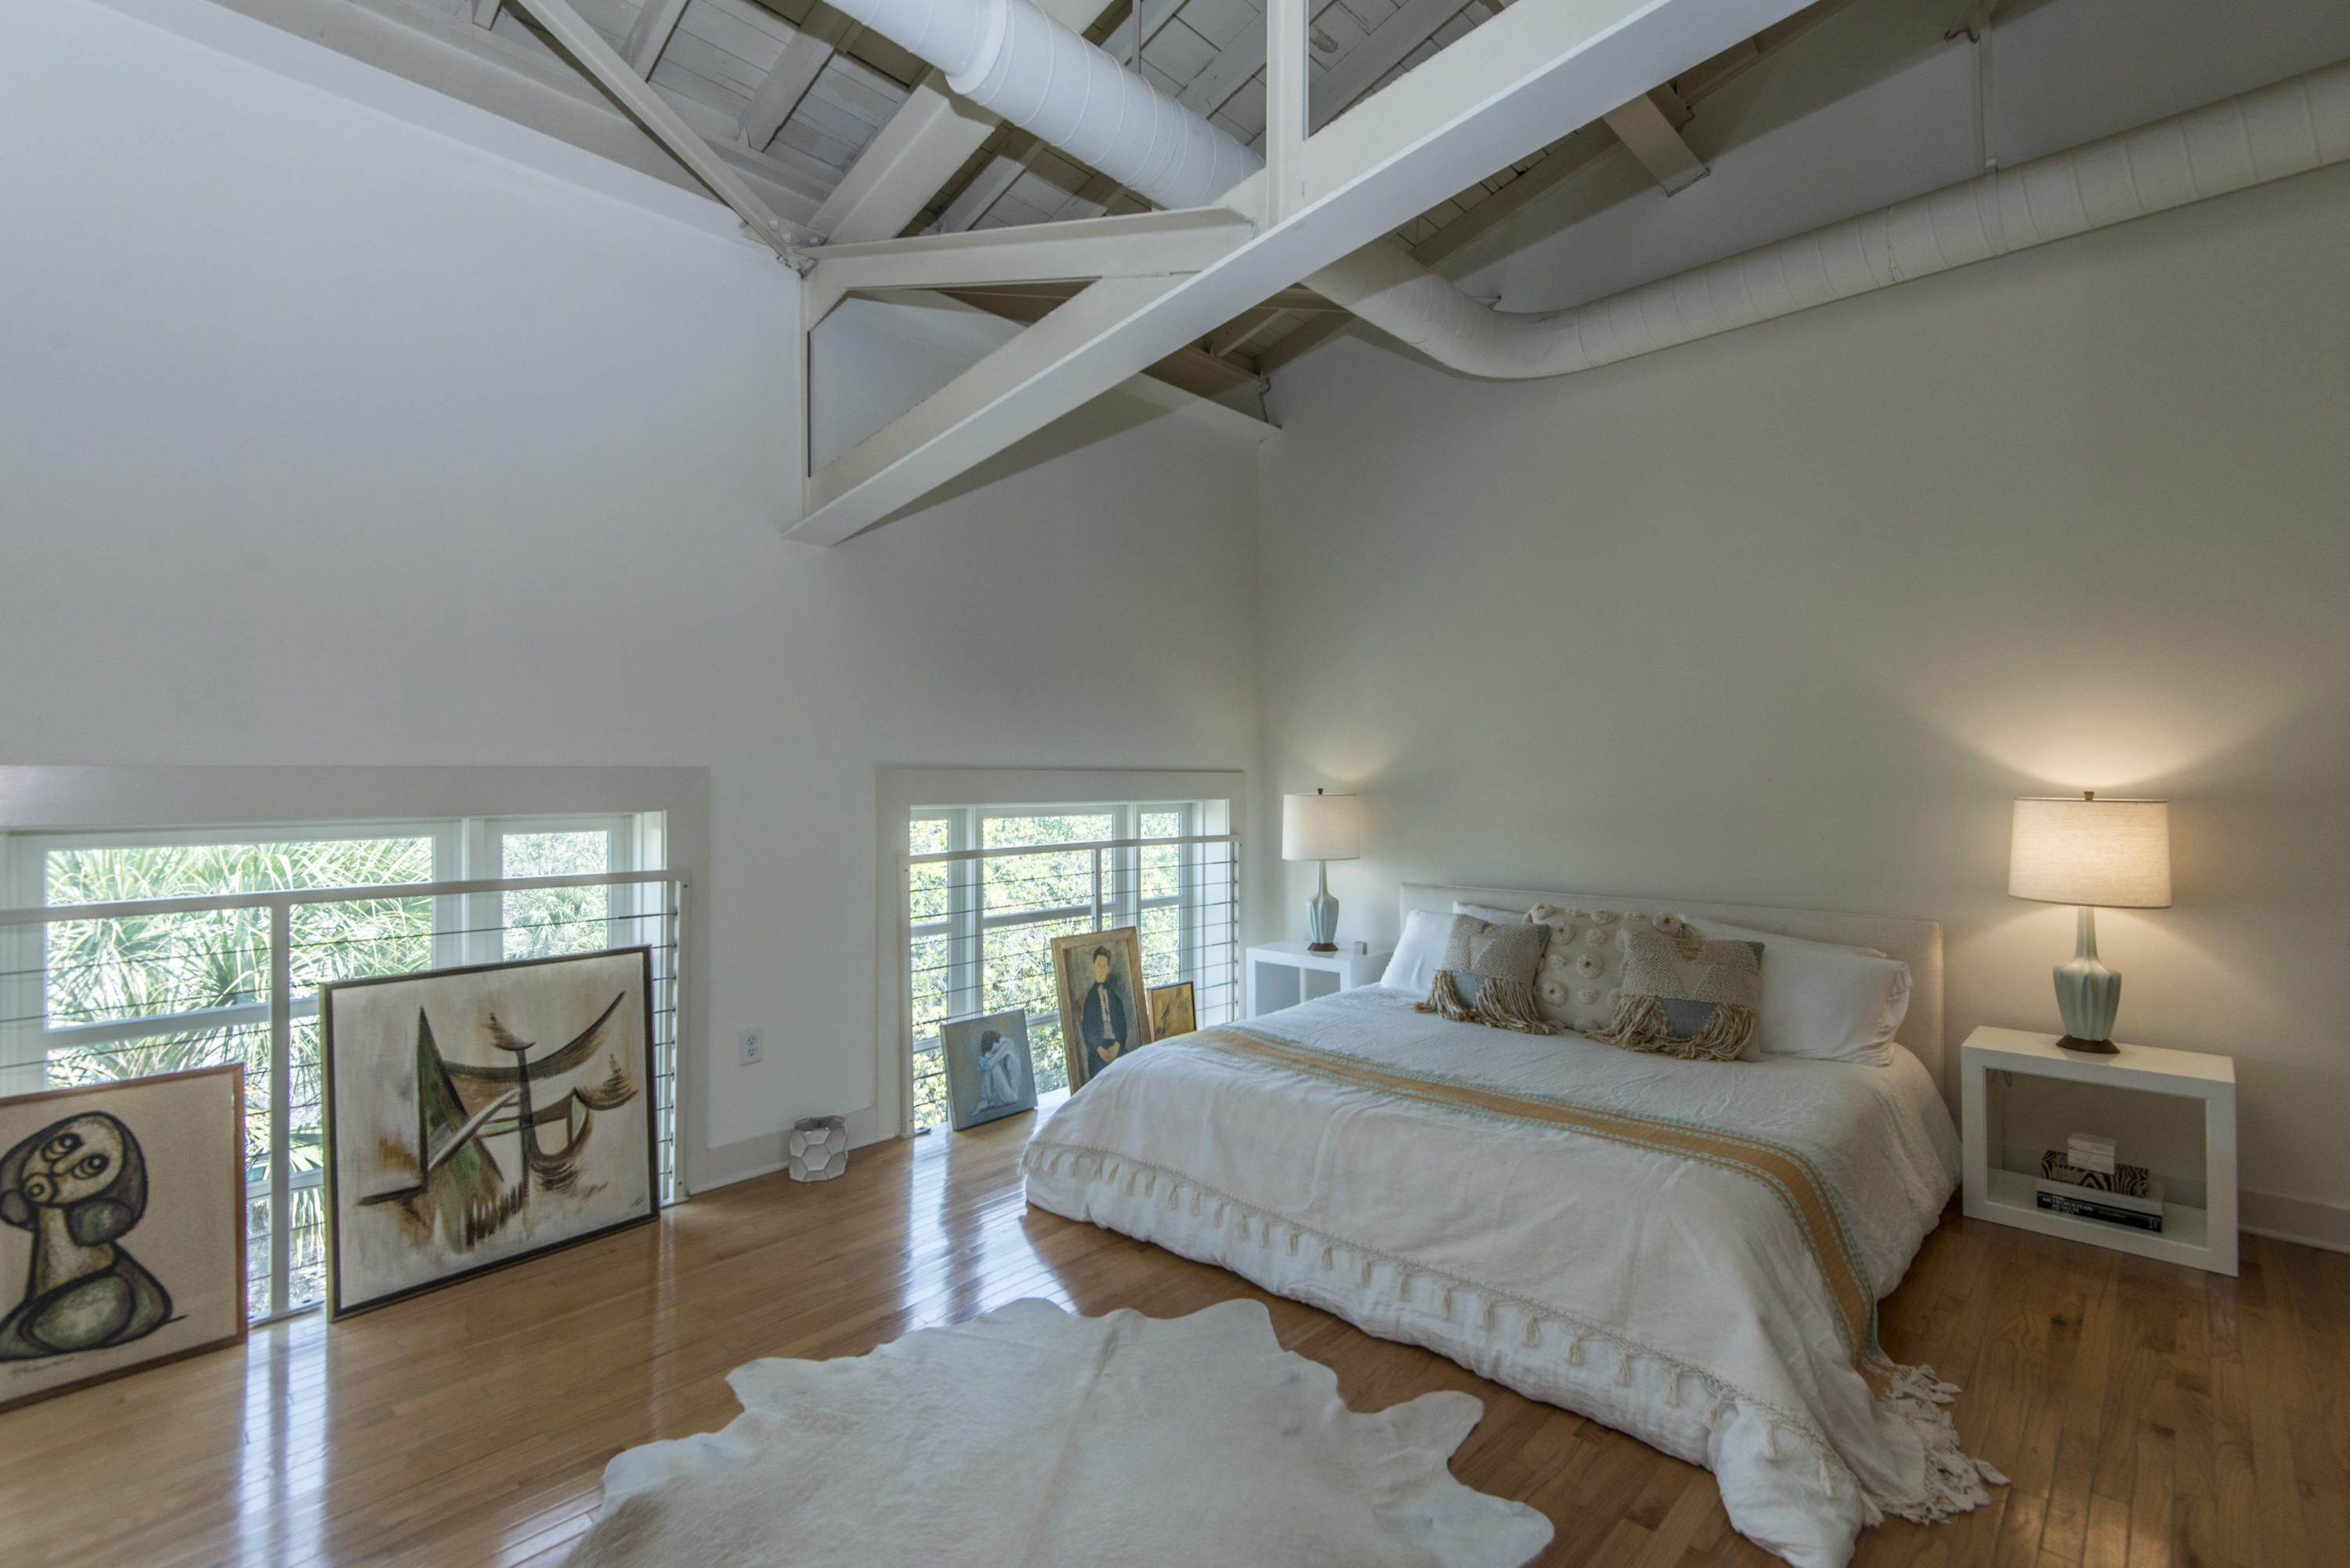 South of Broad Homes For Sale - 3 Chisolm, Charleston, SC - 37